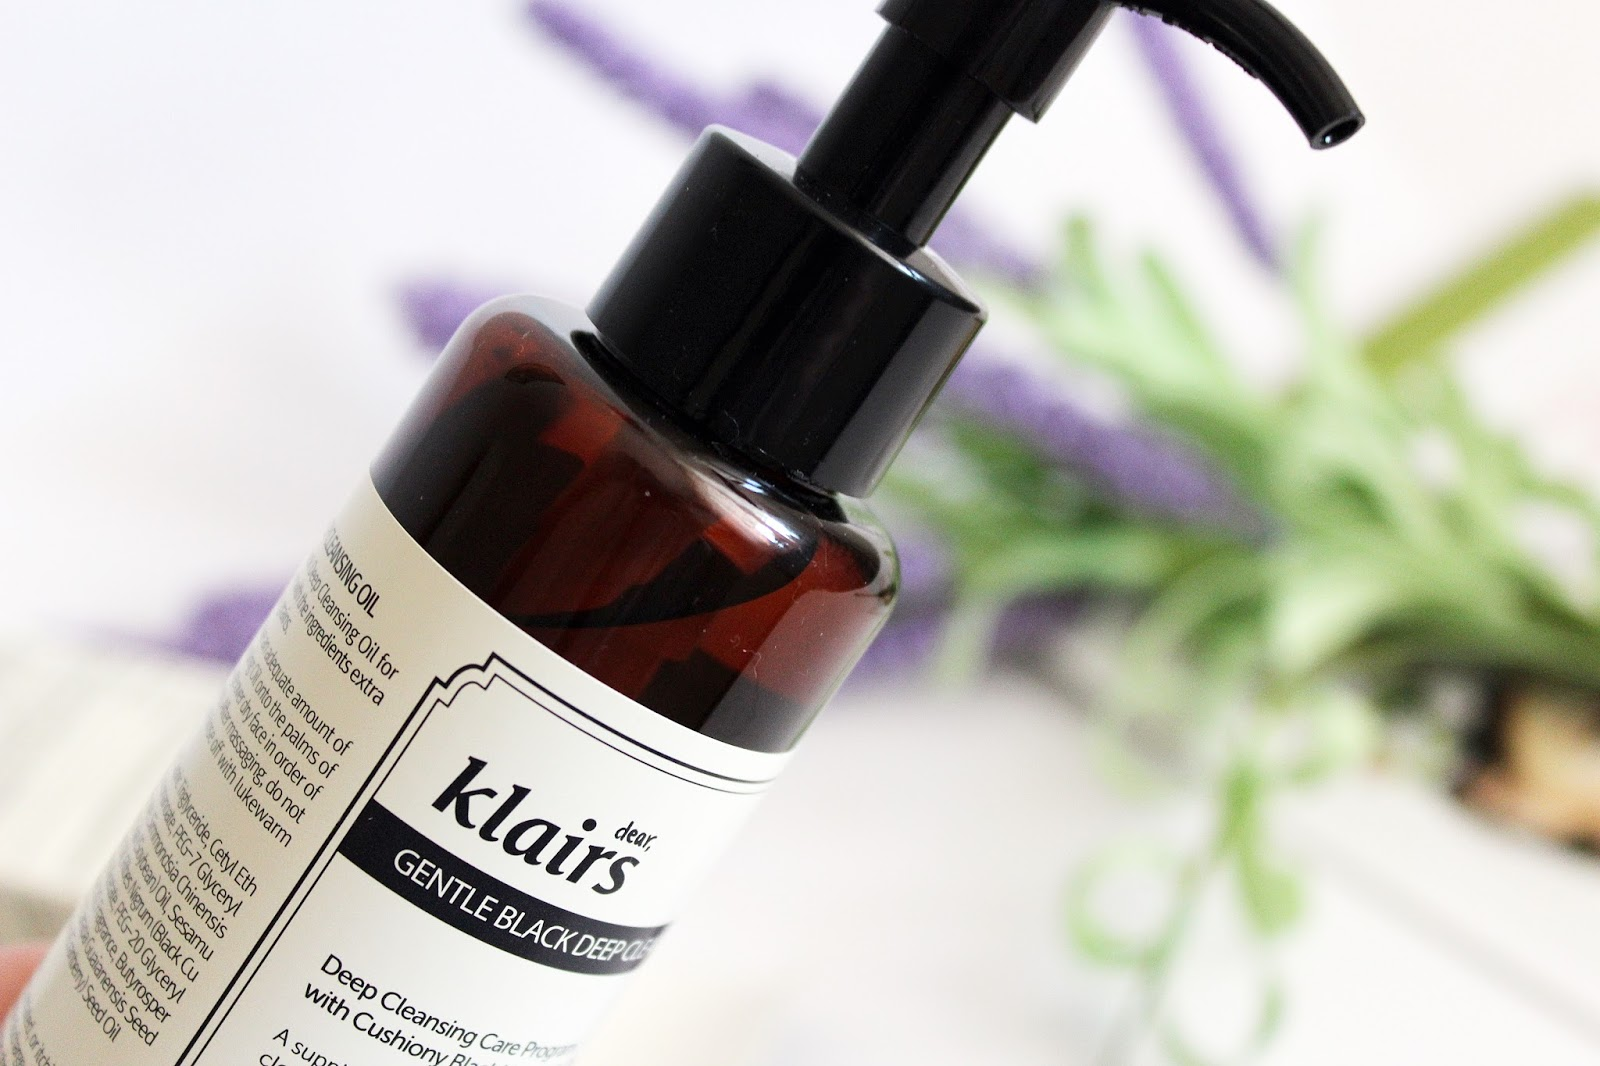 Klairs, Gentle Black Deep Cleansing Oil